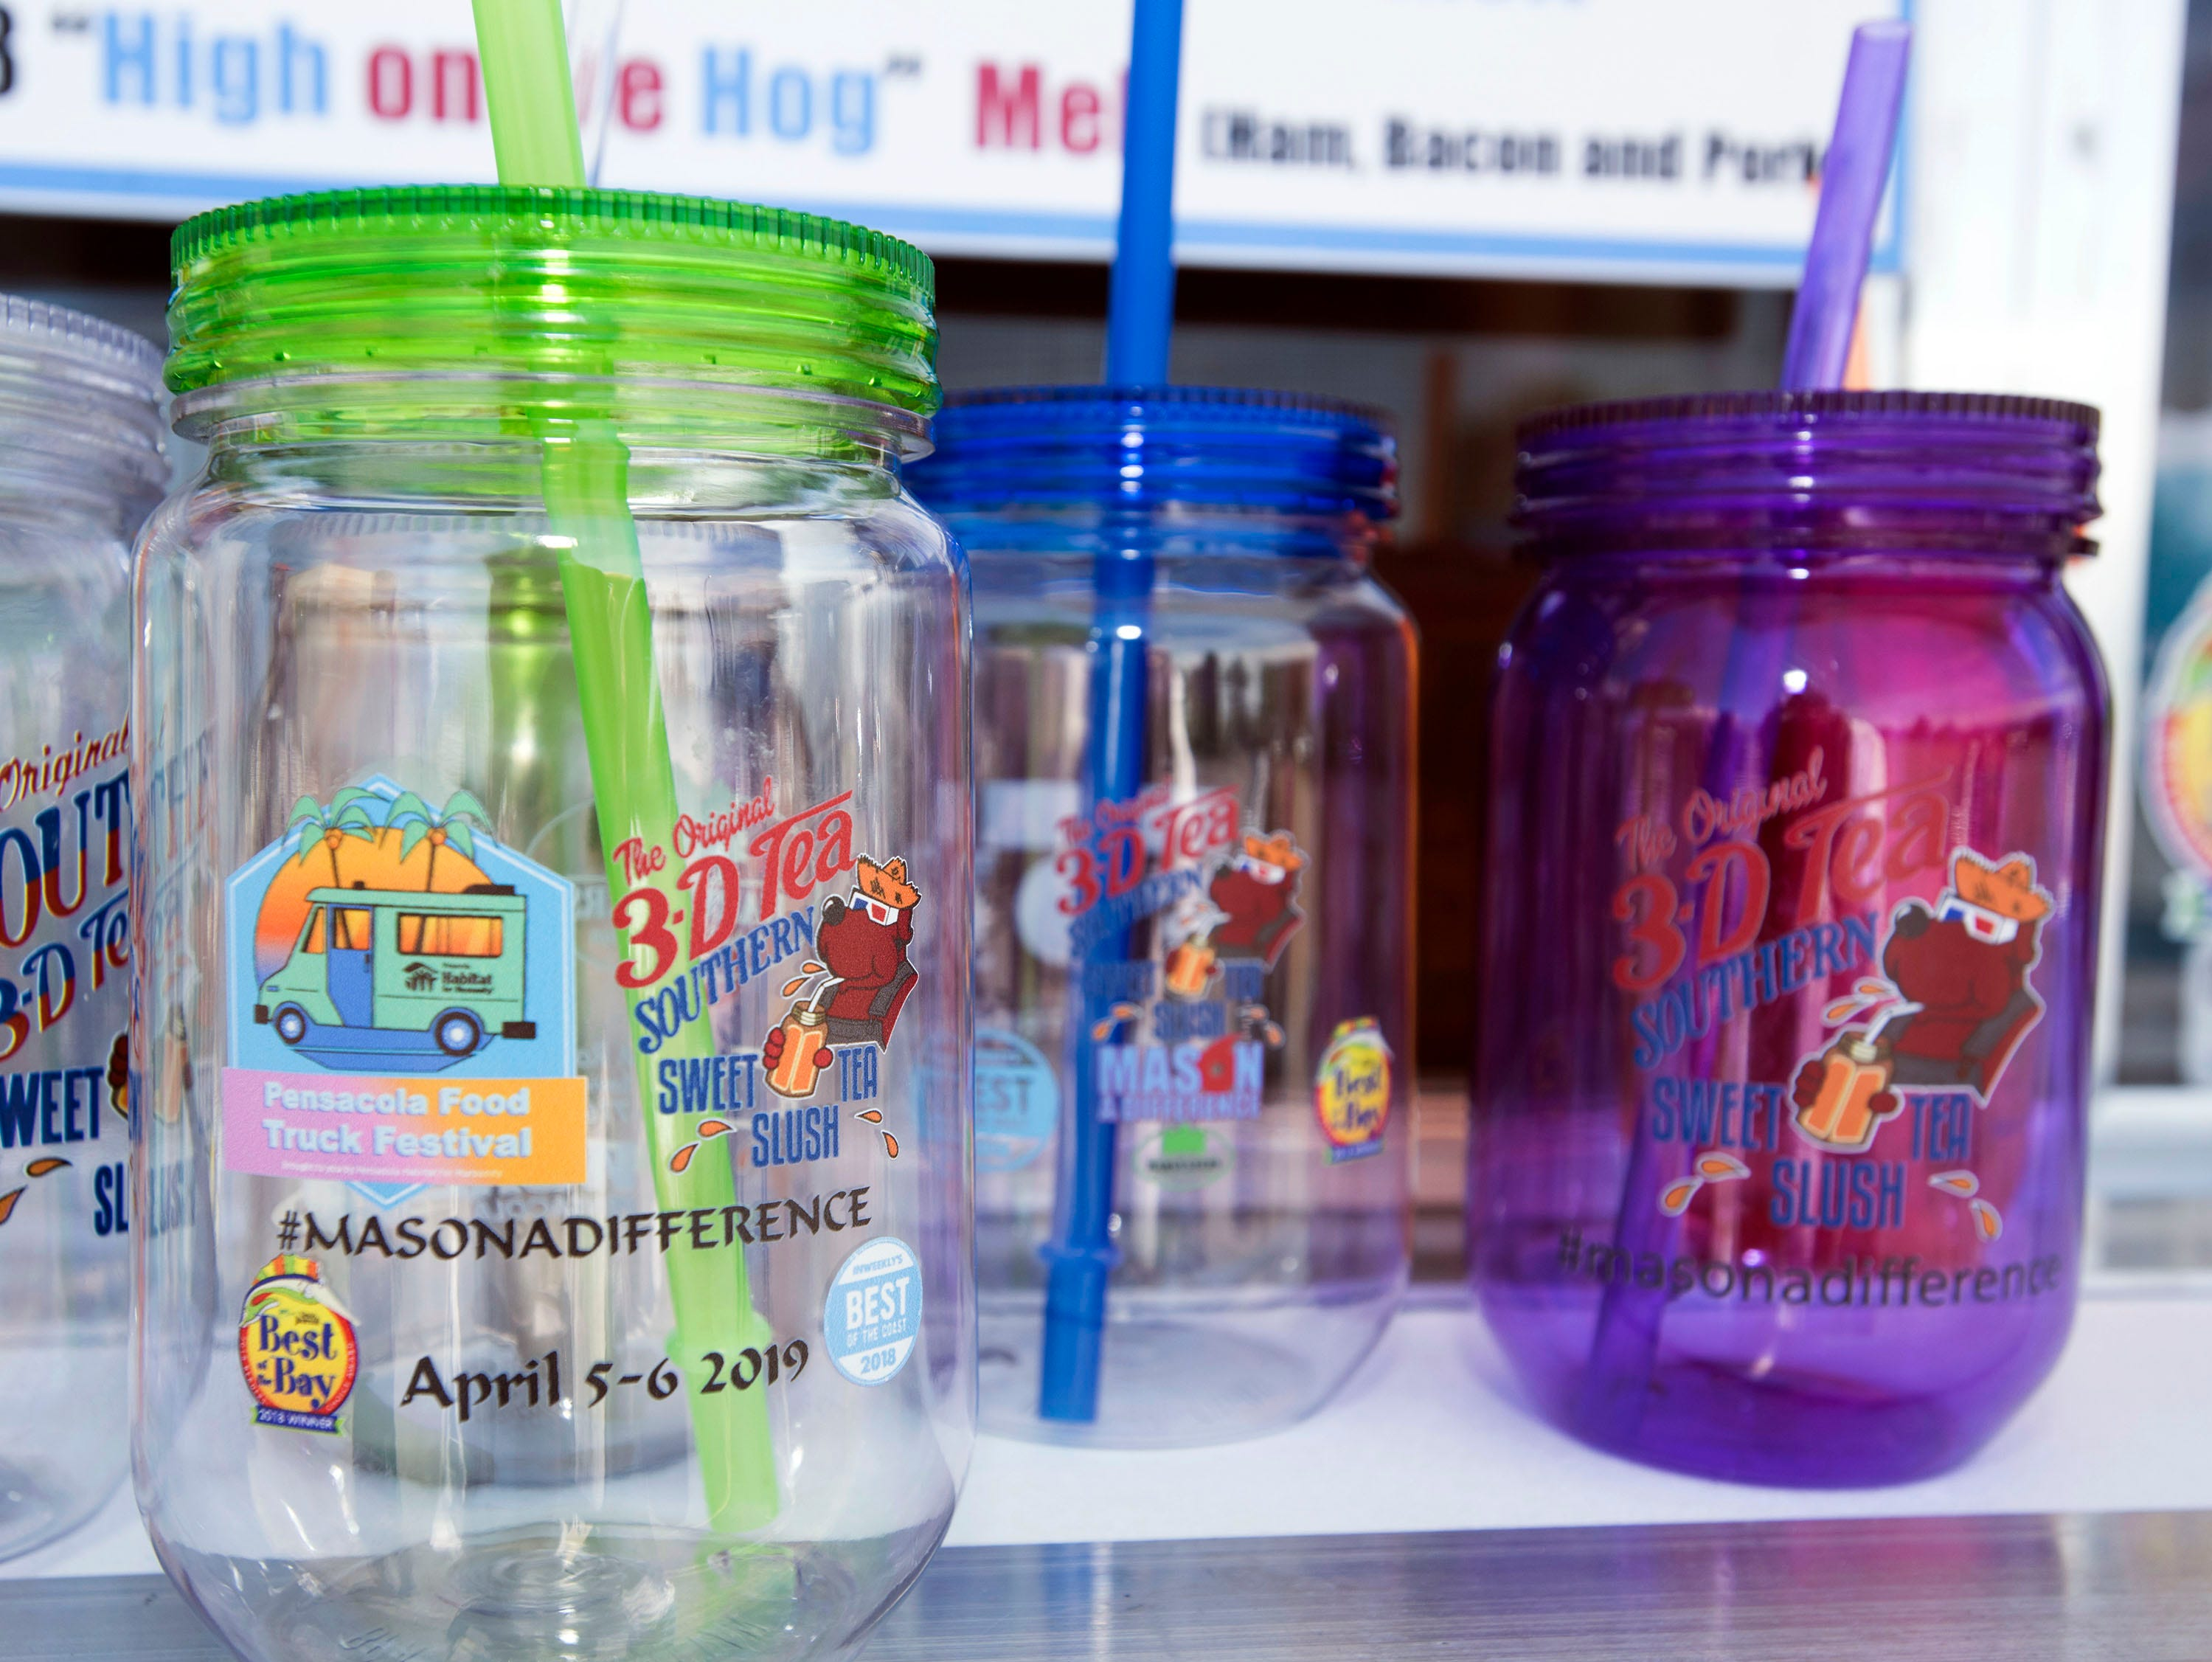 Sean DeSmet and his wife Brooke use these jars to raise funds for their charity, Mason a Difference.